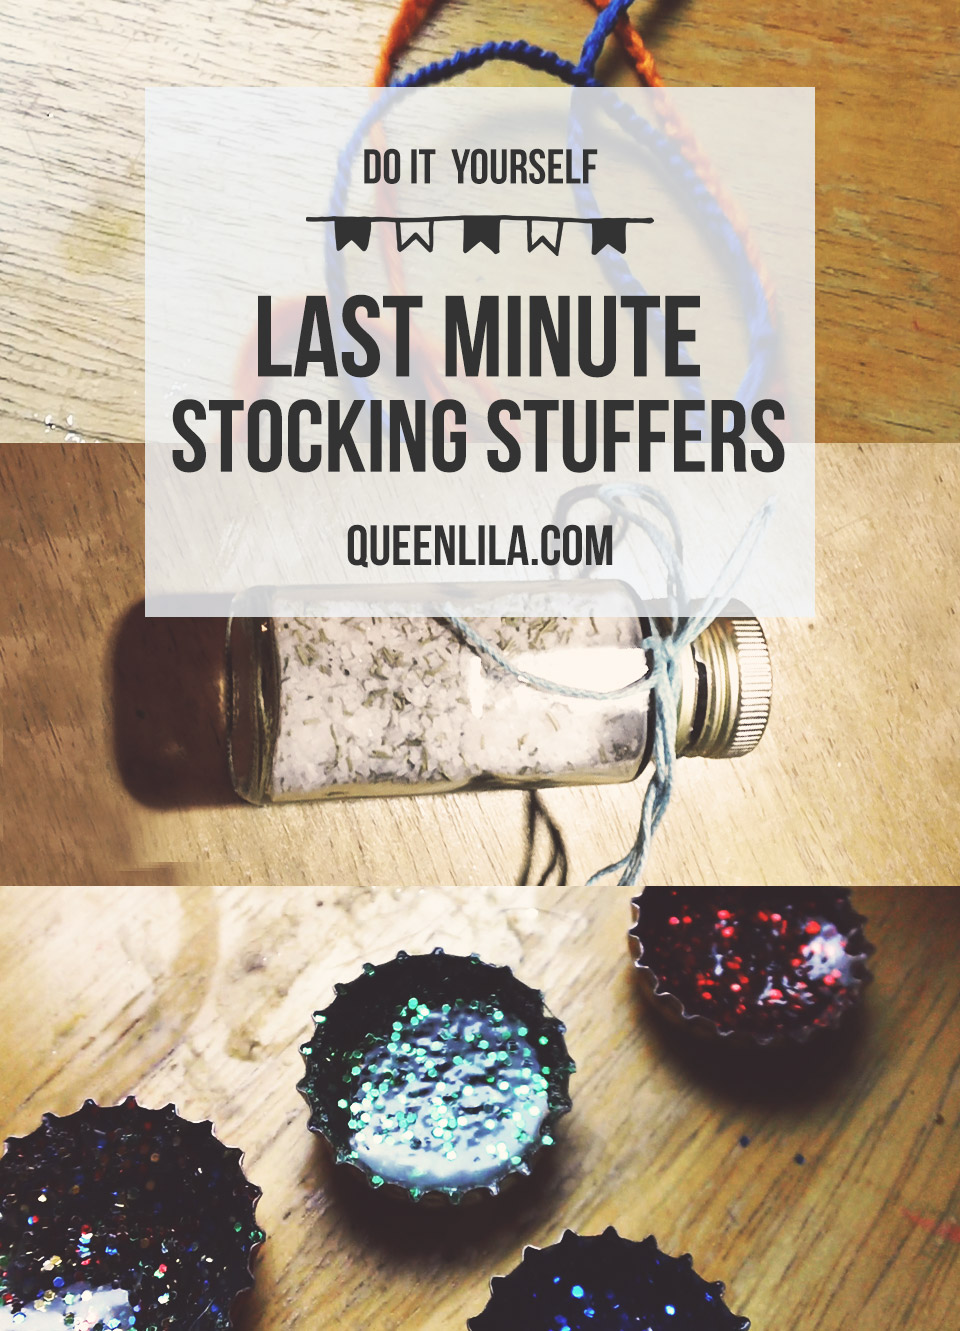 Last minute diy stocking stuffers queen lila last minute diy stocking stuffers 1gresize9601331 solutioingenieria Gallery